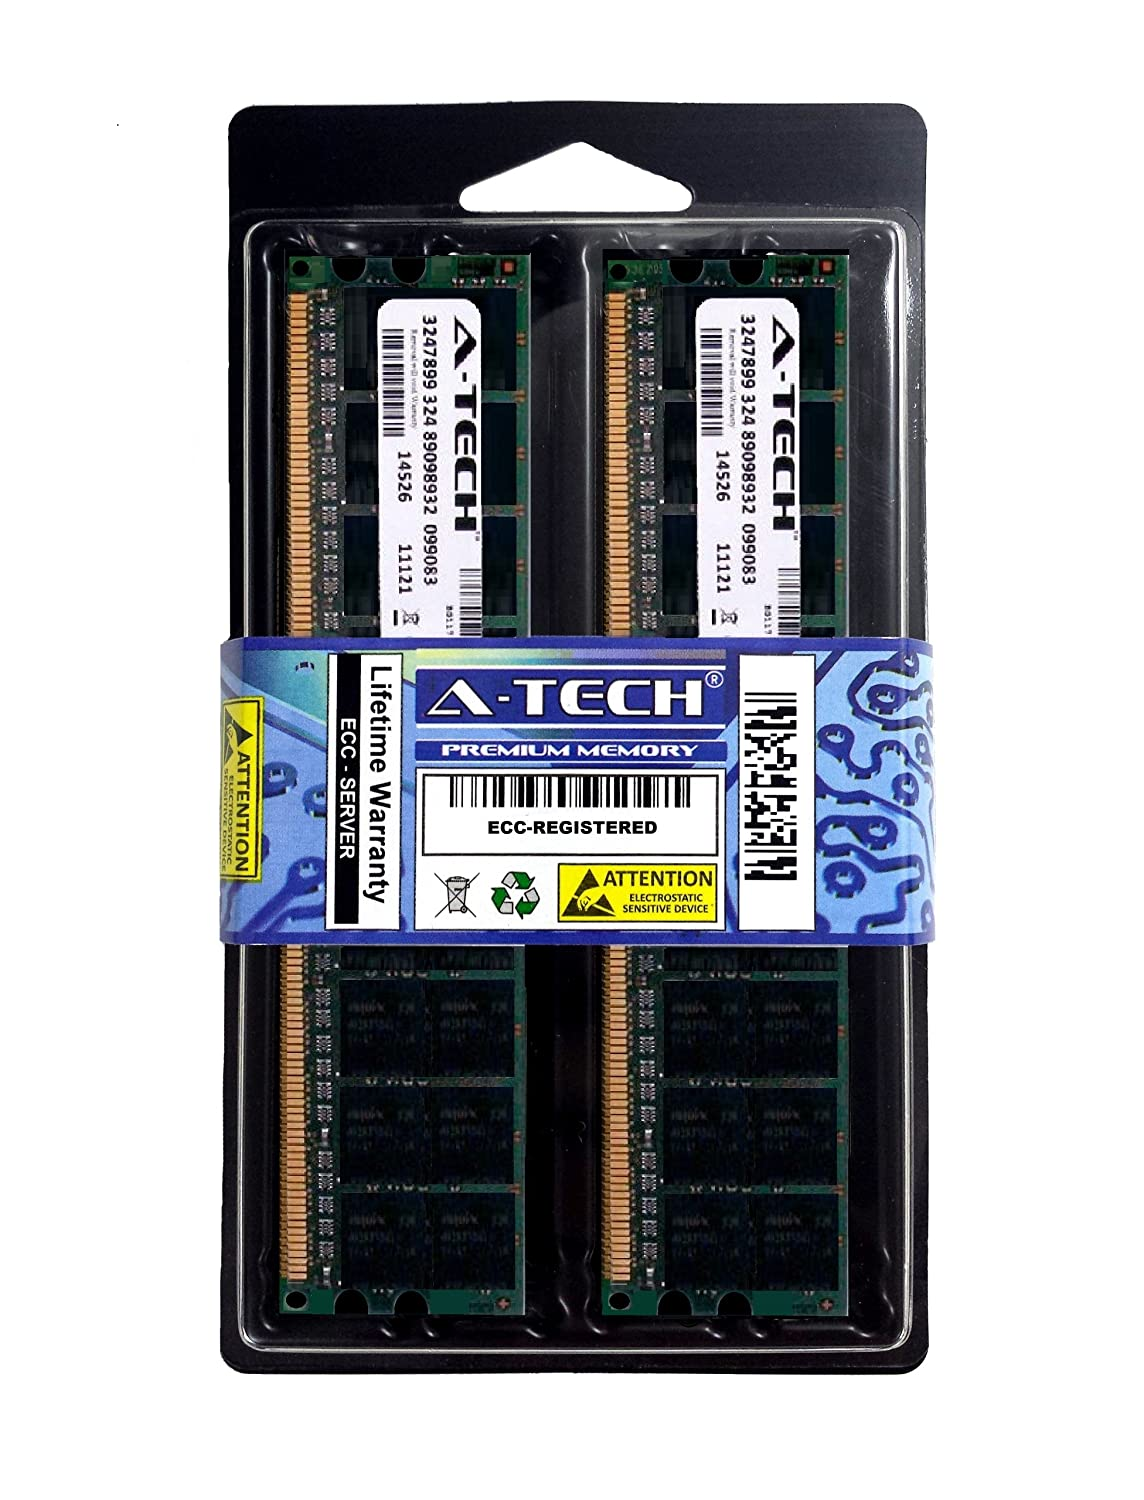 16gb Kit 4x4gb Ecc Registered Ddr2 Pc2 5300 667 Mhz Memory Ram Ece Rockstars Microcontrollerbased Solar Charger For Hewlett Packard Compaq Servers And Workstations Designed The Hp Proliant